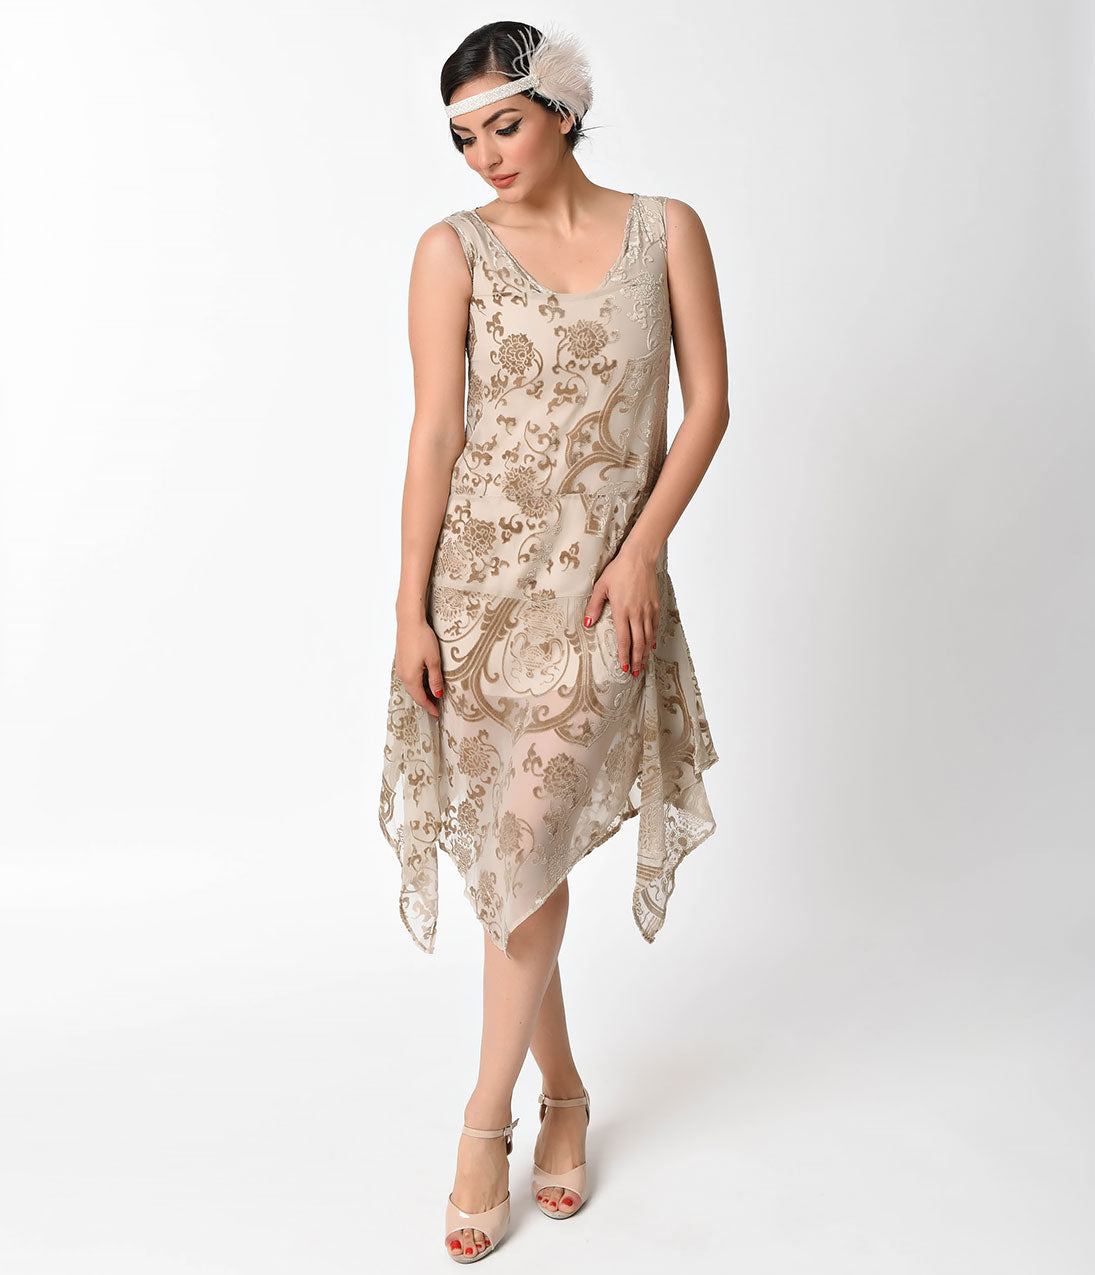 1920s Style Dresses, Flapper Dresses 1920s Style Champagne Burnout Velvet Flapper Dress $90.00 AT vintagedancer.com